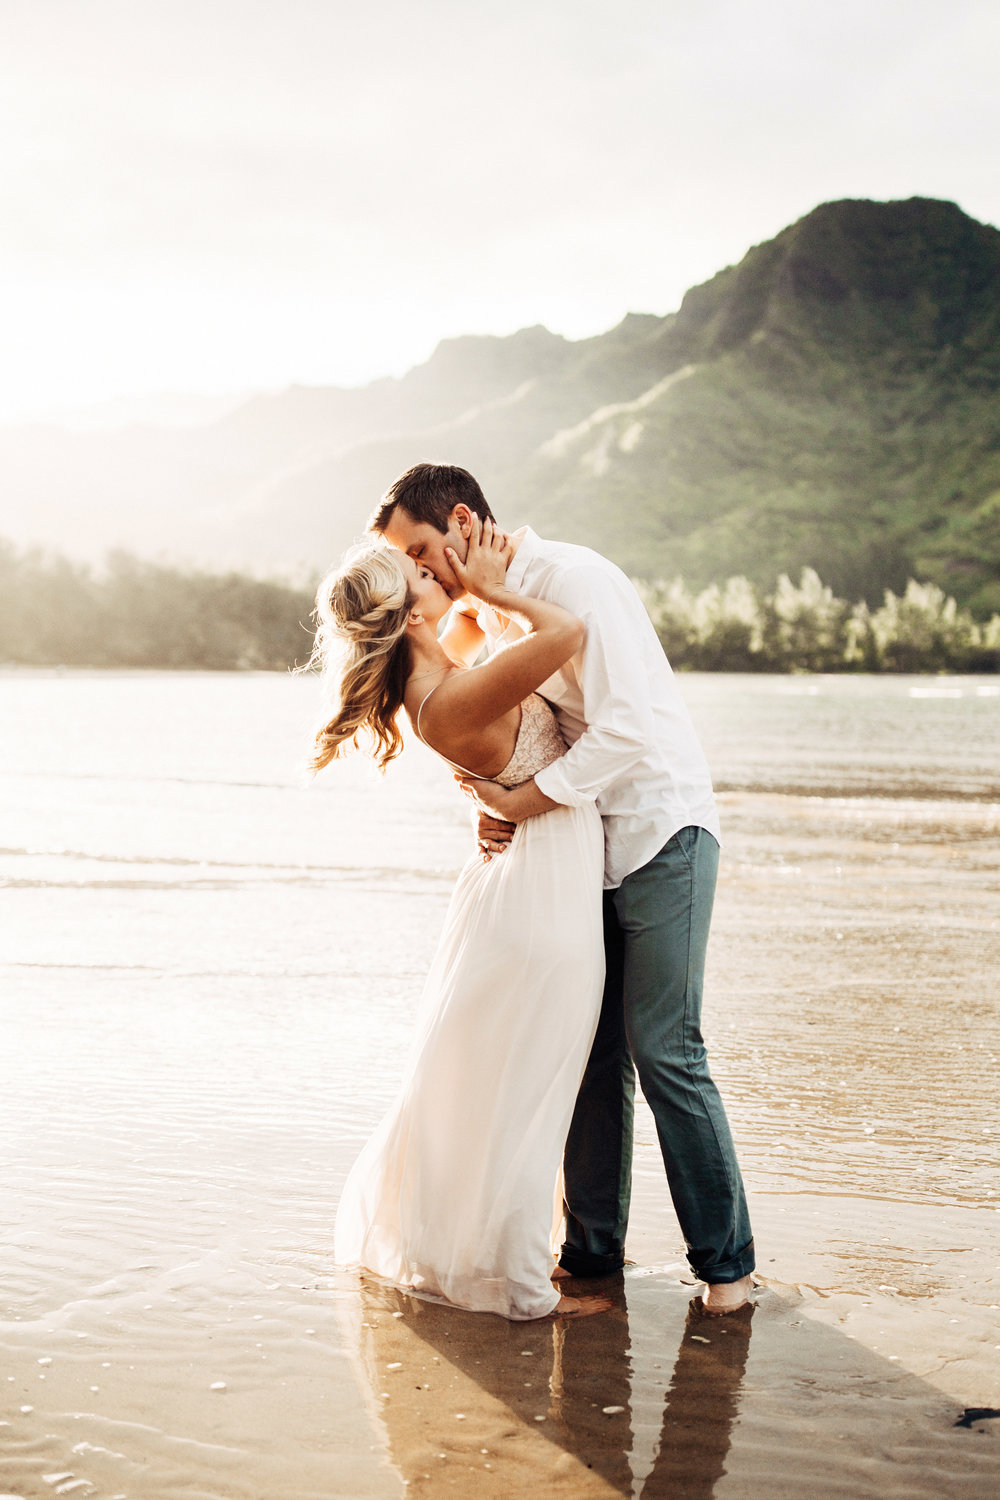 oahu-engagement-session-128-final.JPG